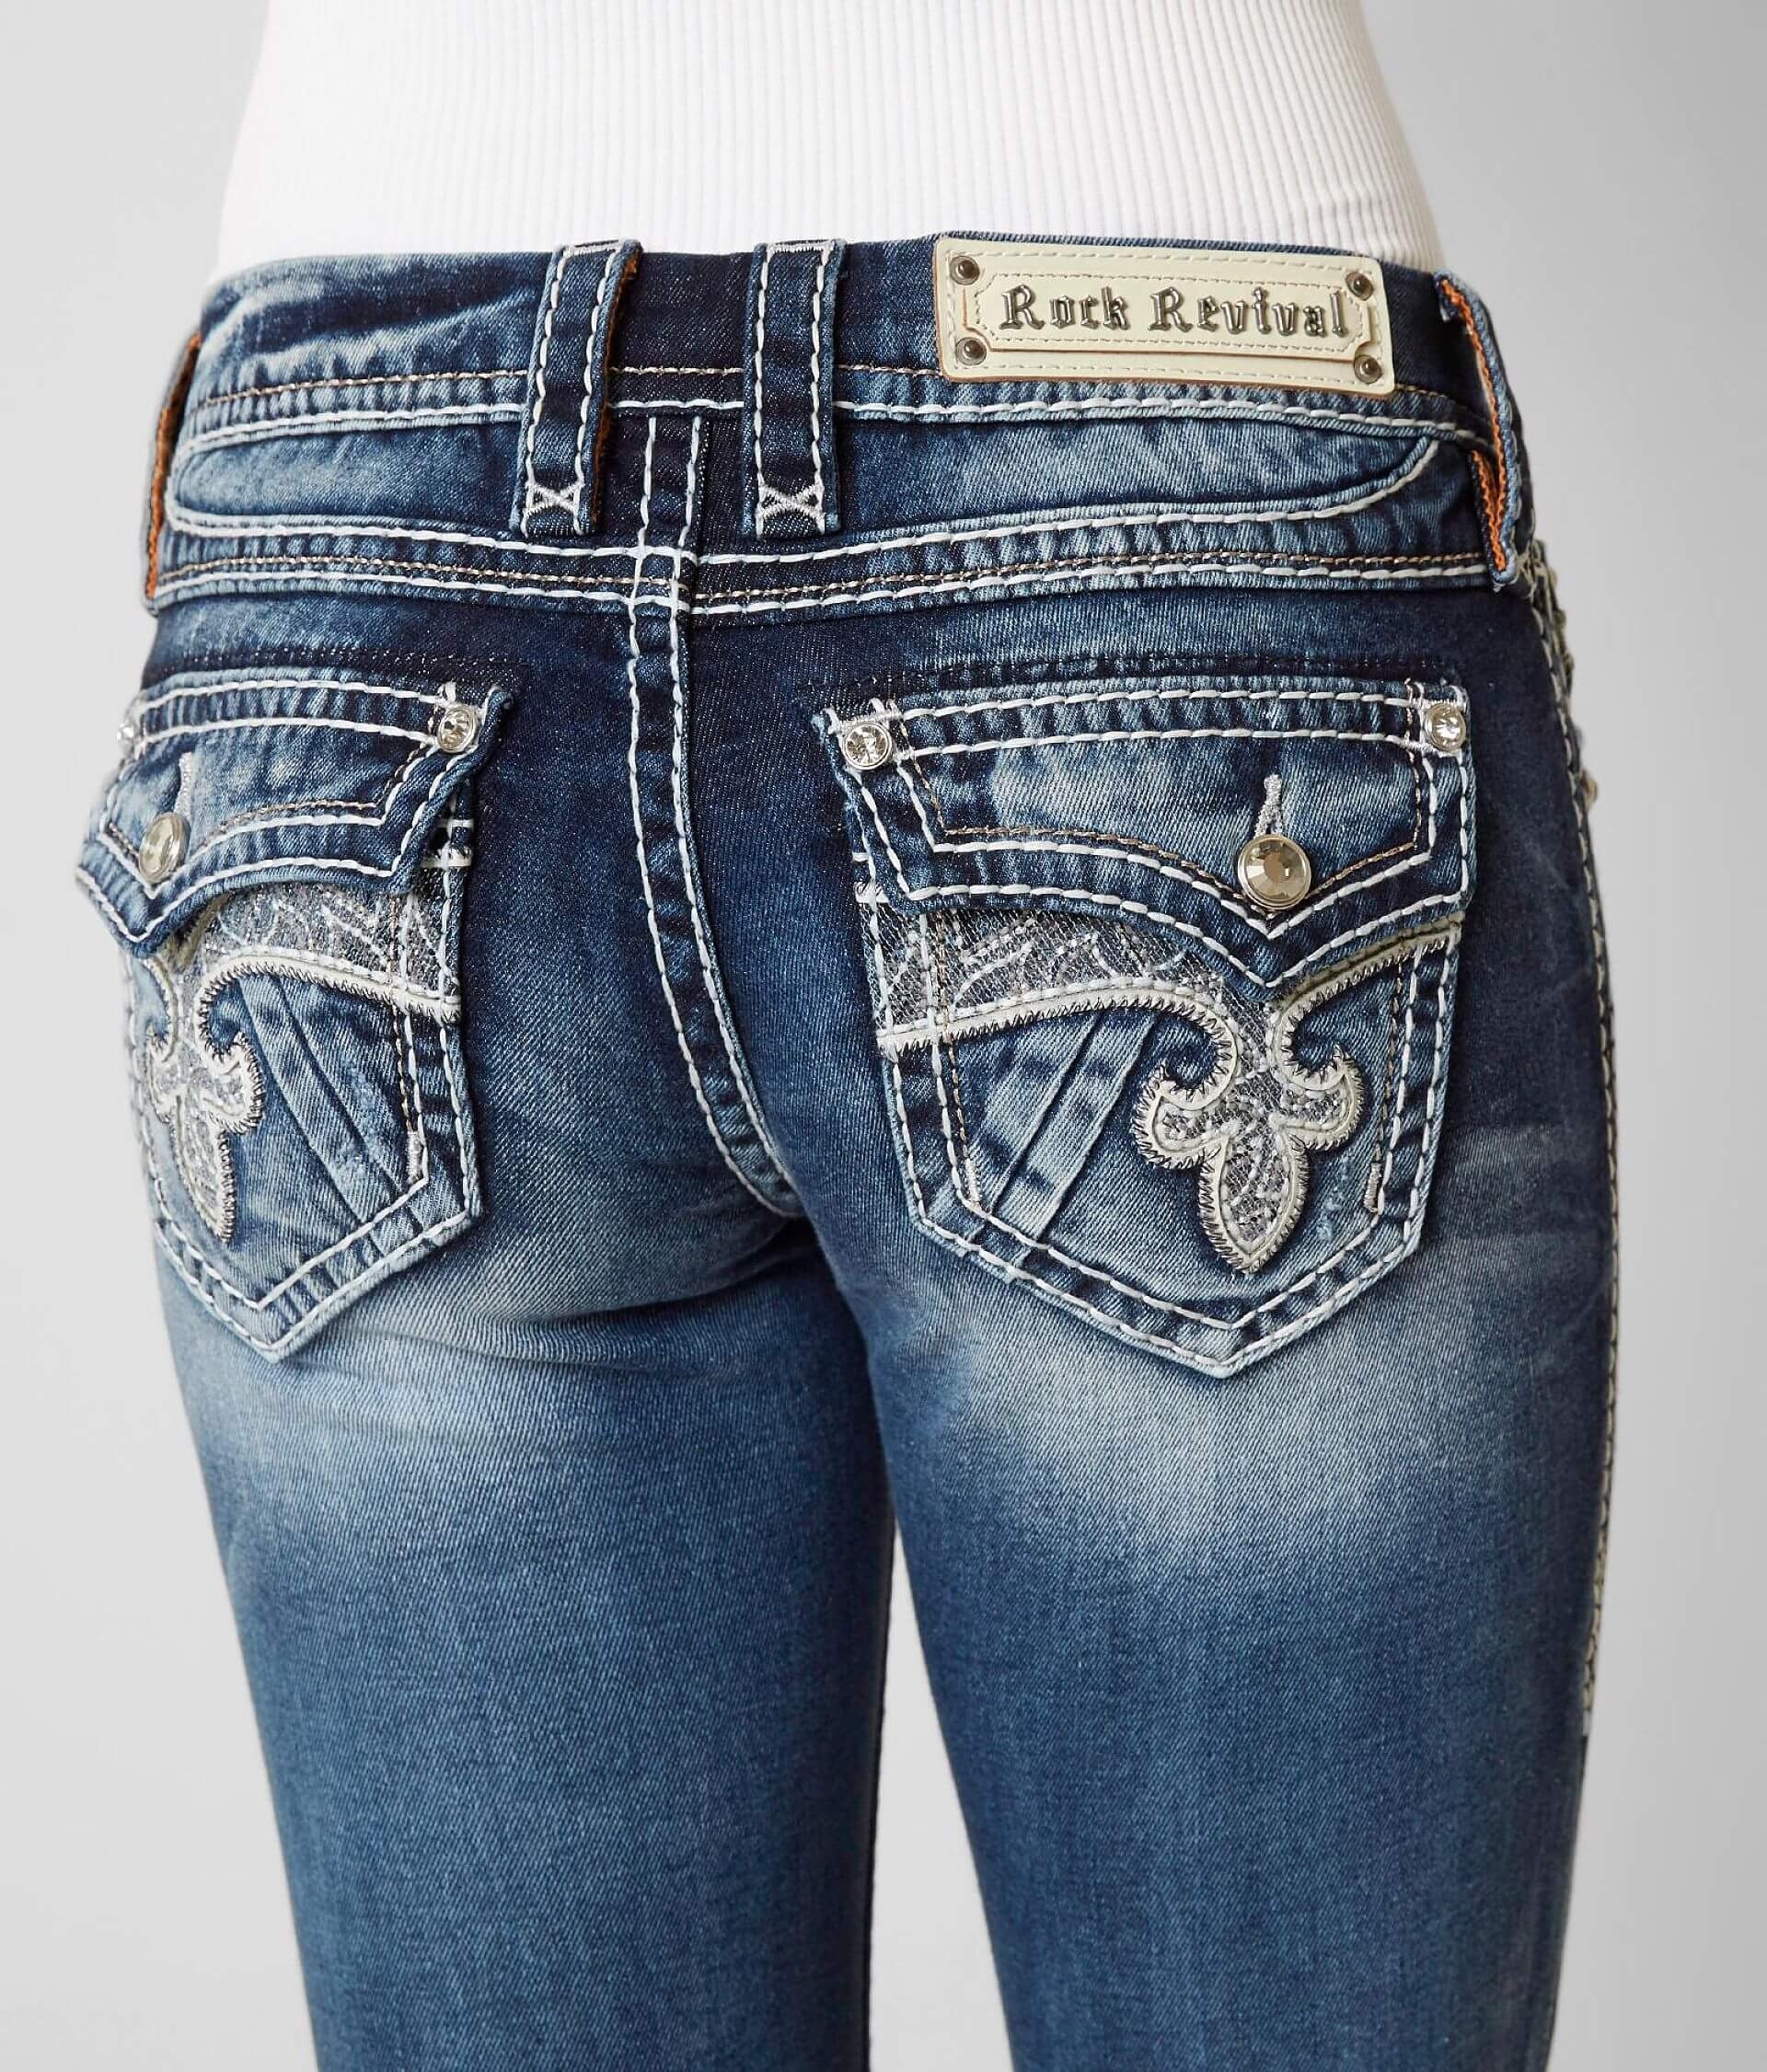 1a63e765c6a Rock Revival Kylie Boot Stretch Jean - Women s Jeans in Kylie B201 ...